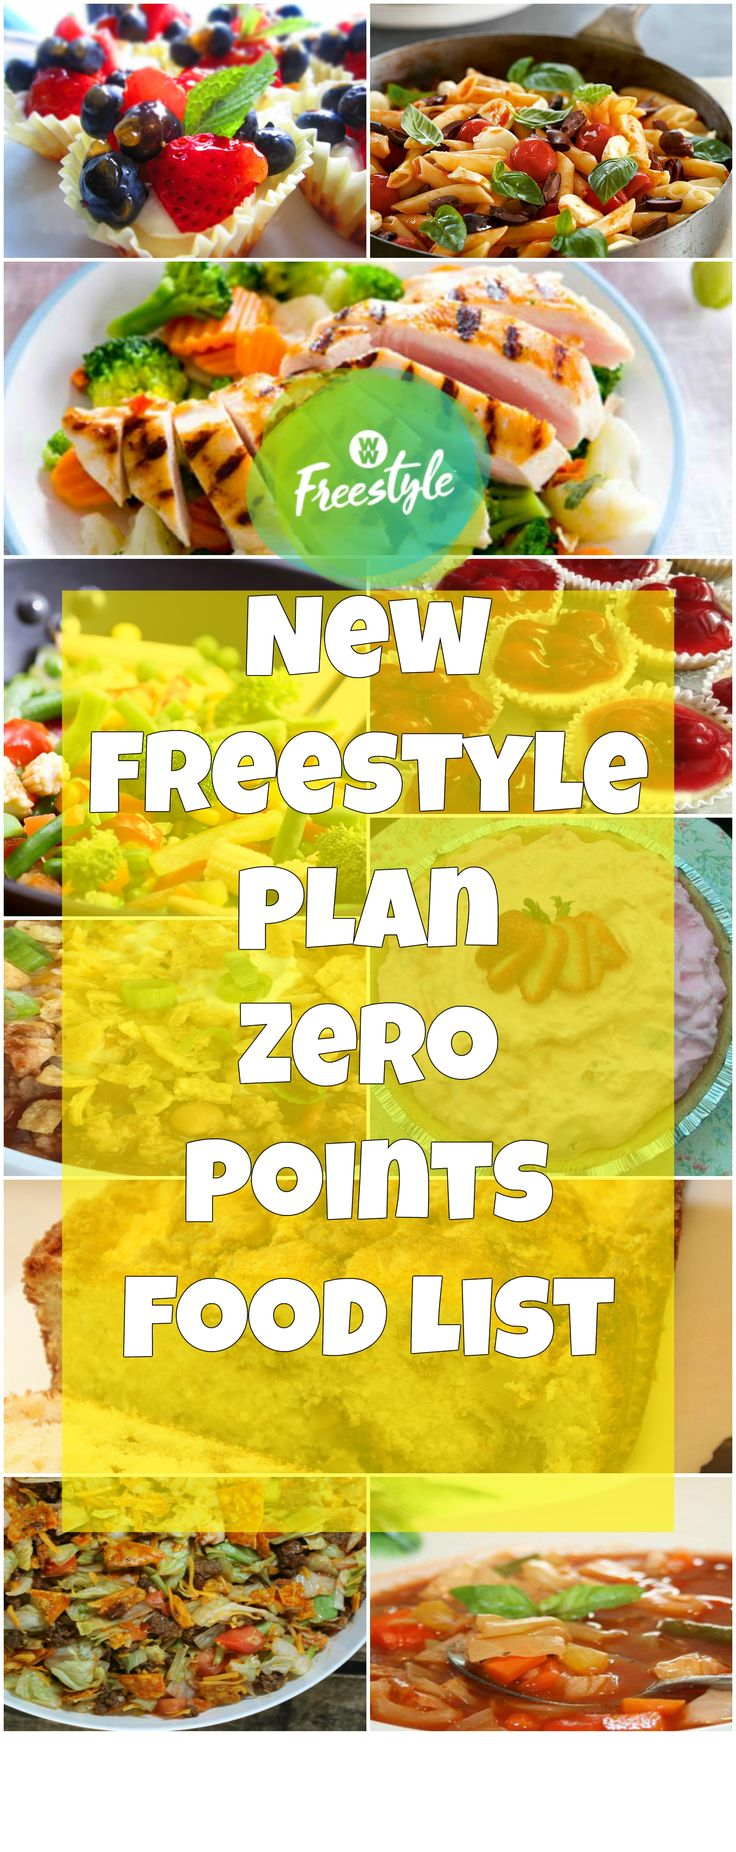 New Weight Watchers Zero Points Food List – Freestyle Plan | weight watchers recipes | Page 2